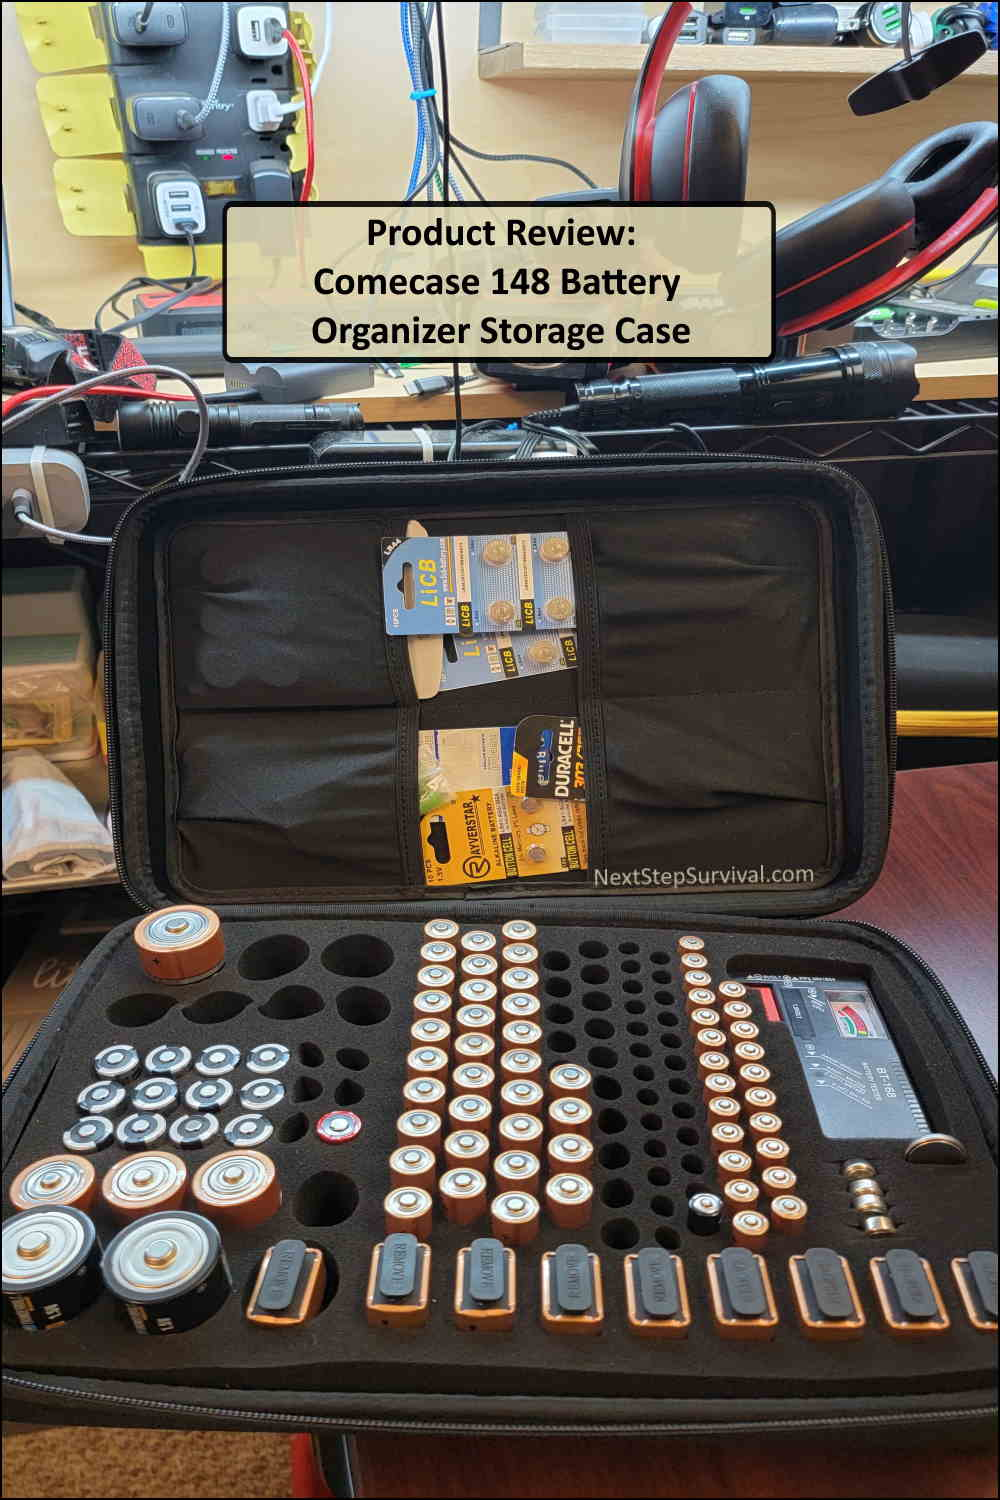 Pinterest Image - Comecase 148 Battery Organizer Storage Box Product Review